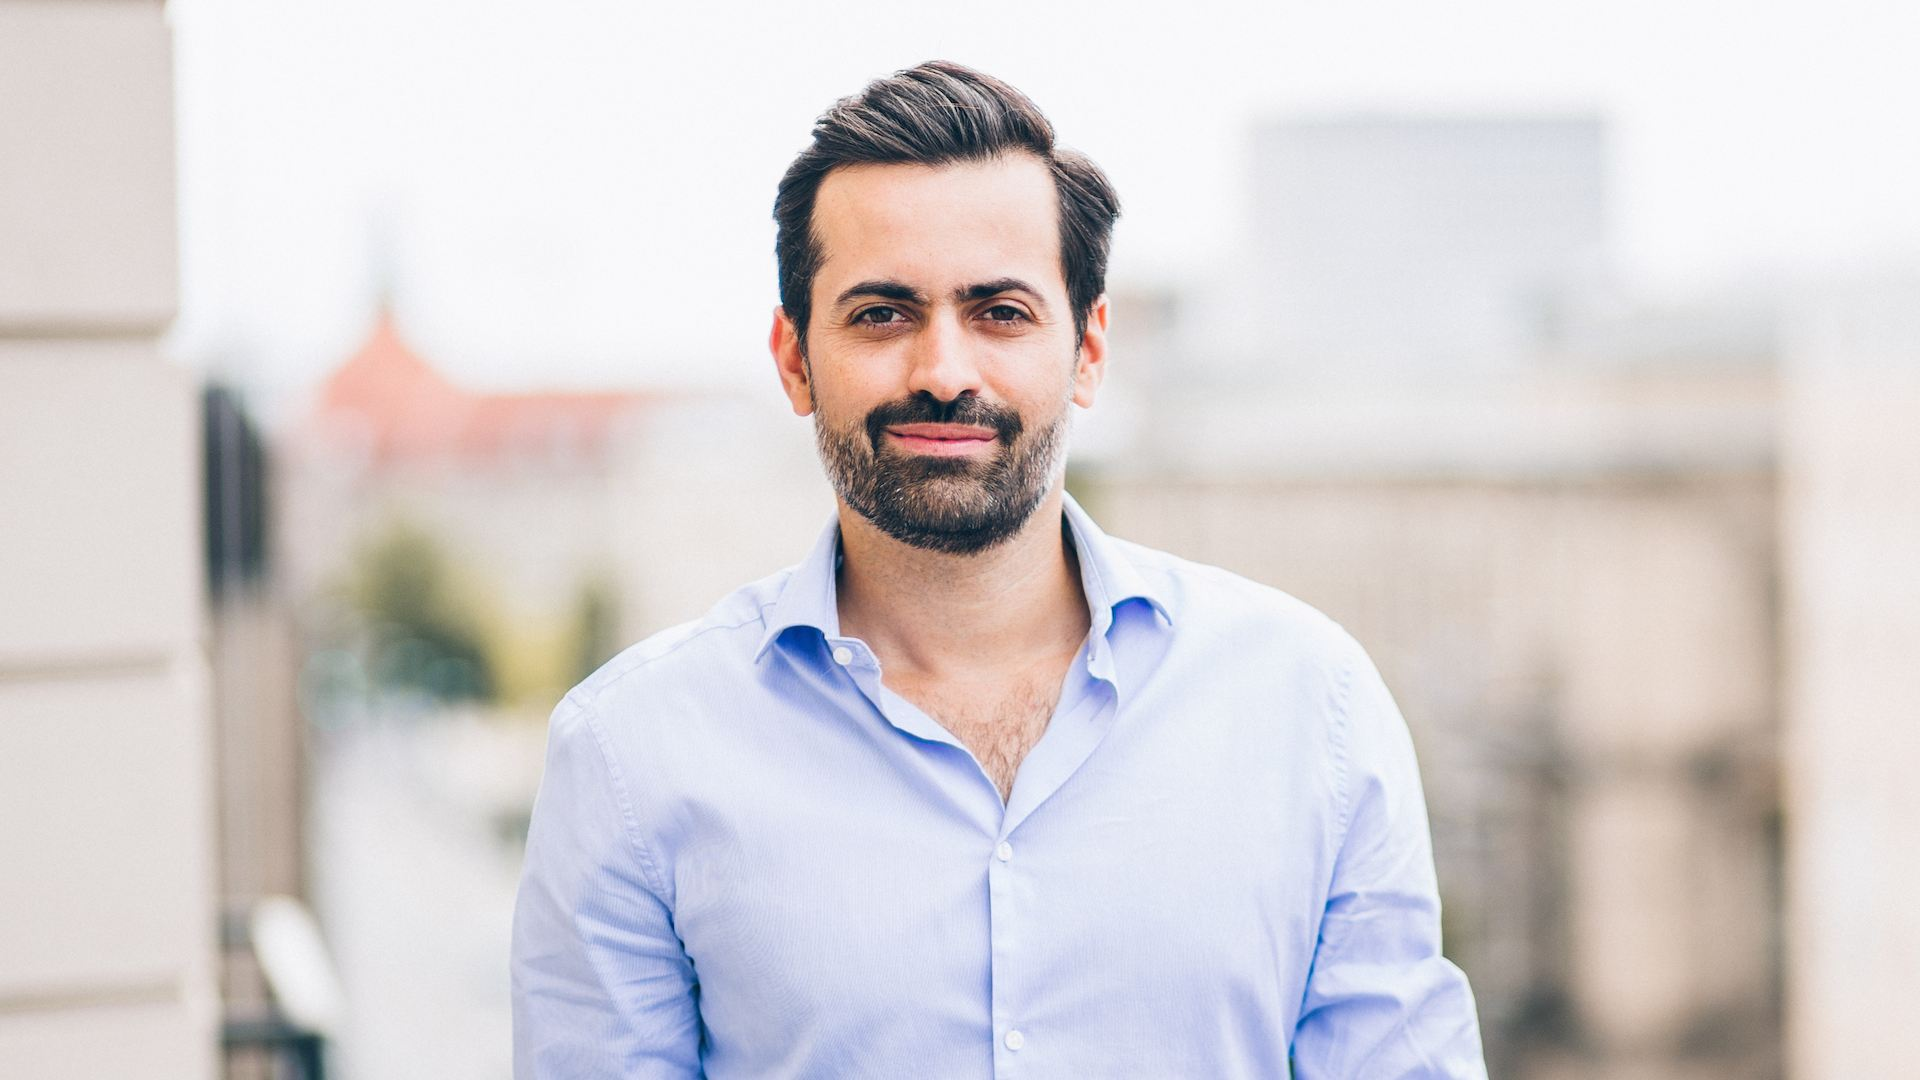 Friedrich Neuman joins peaq Advisory Board